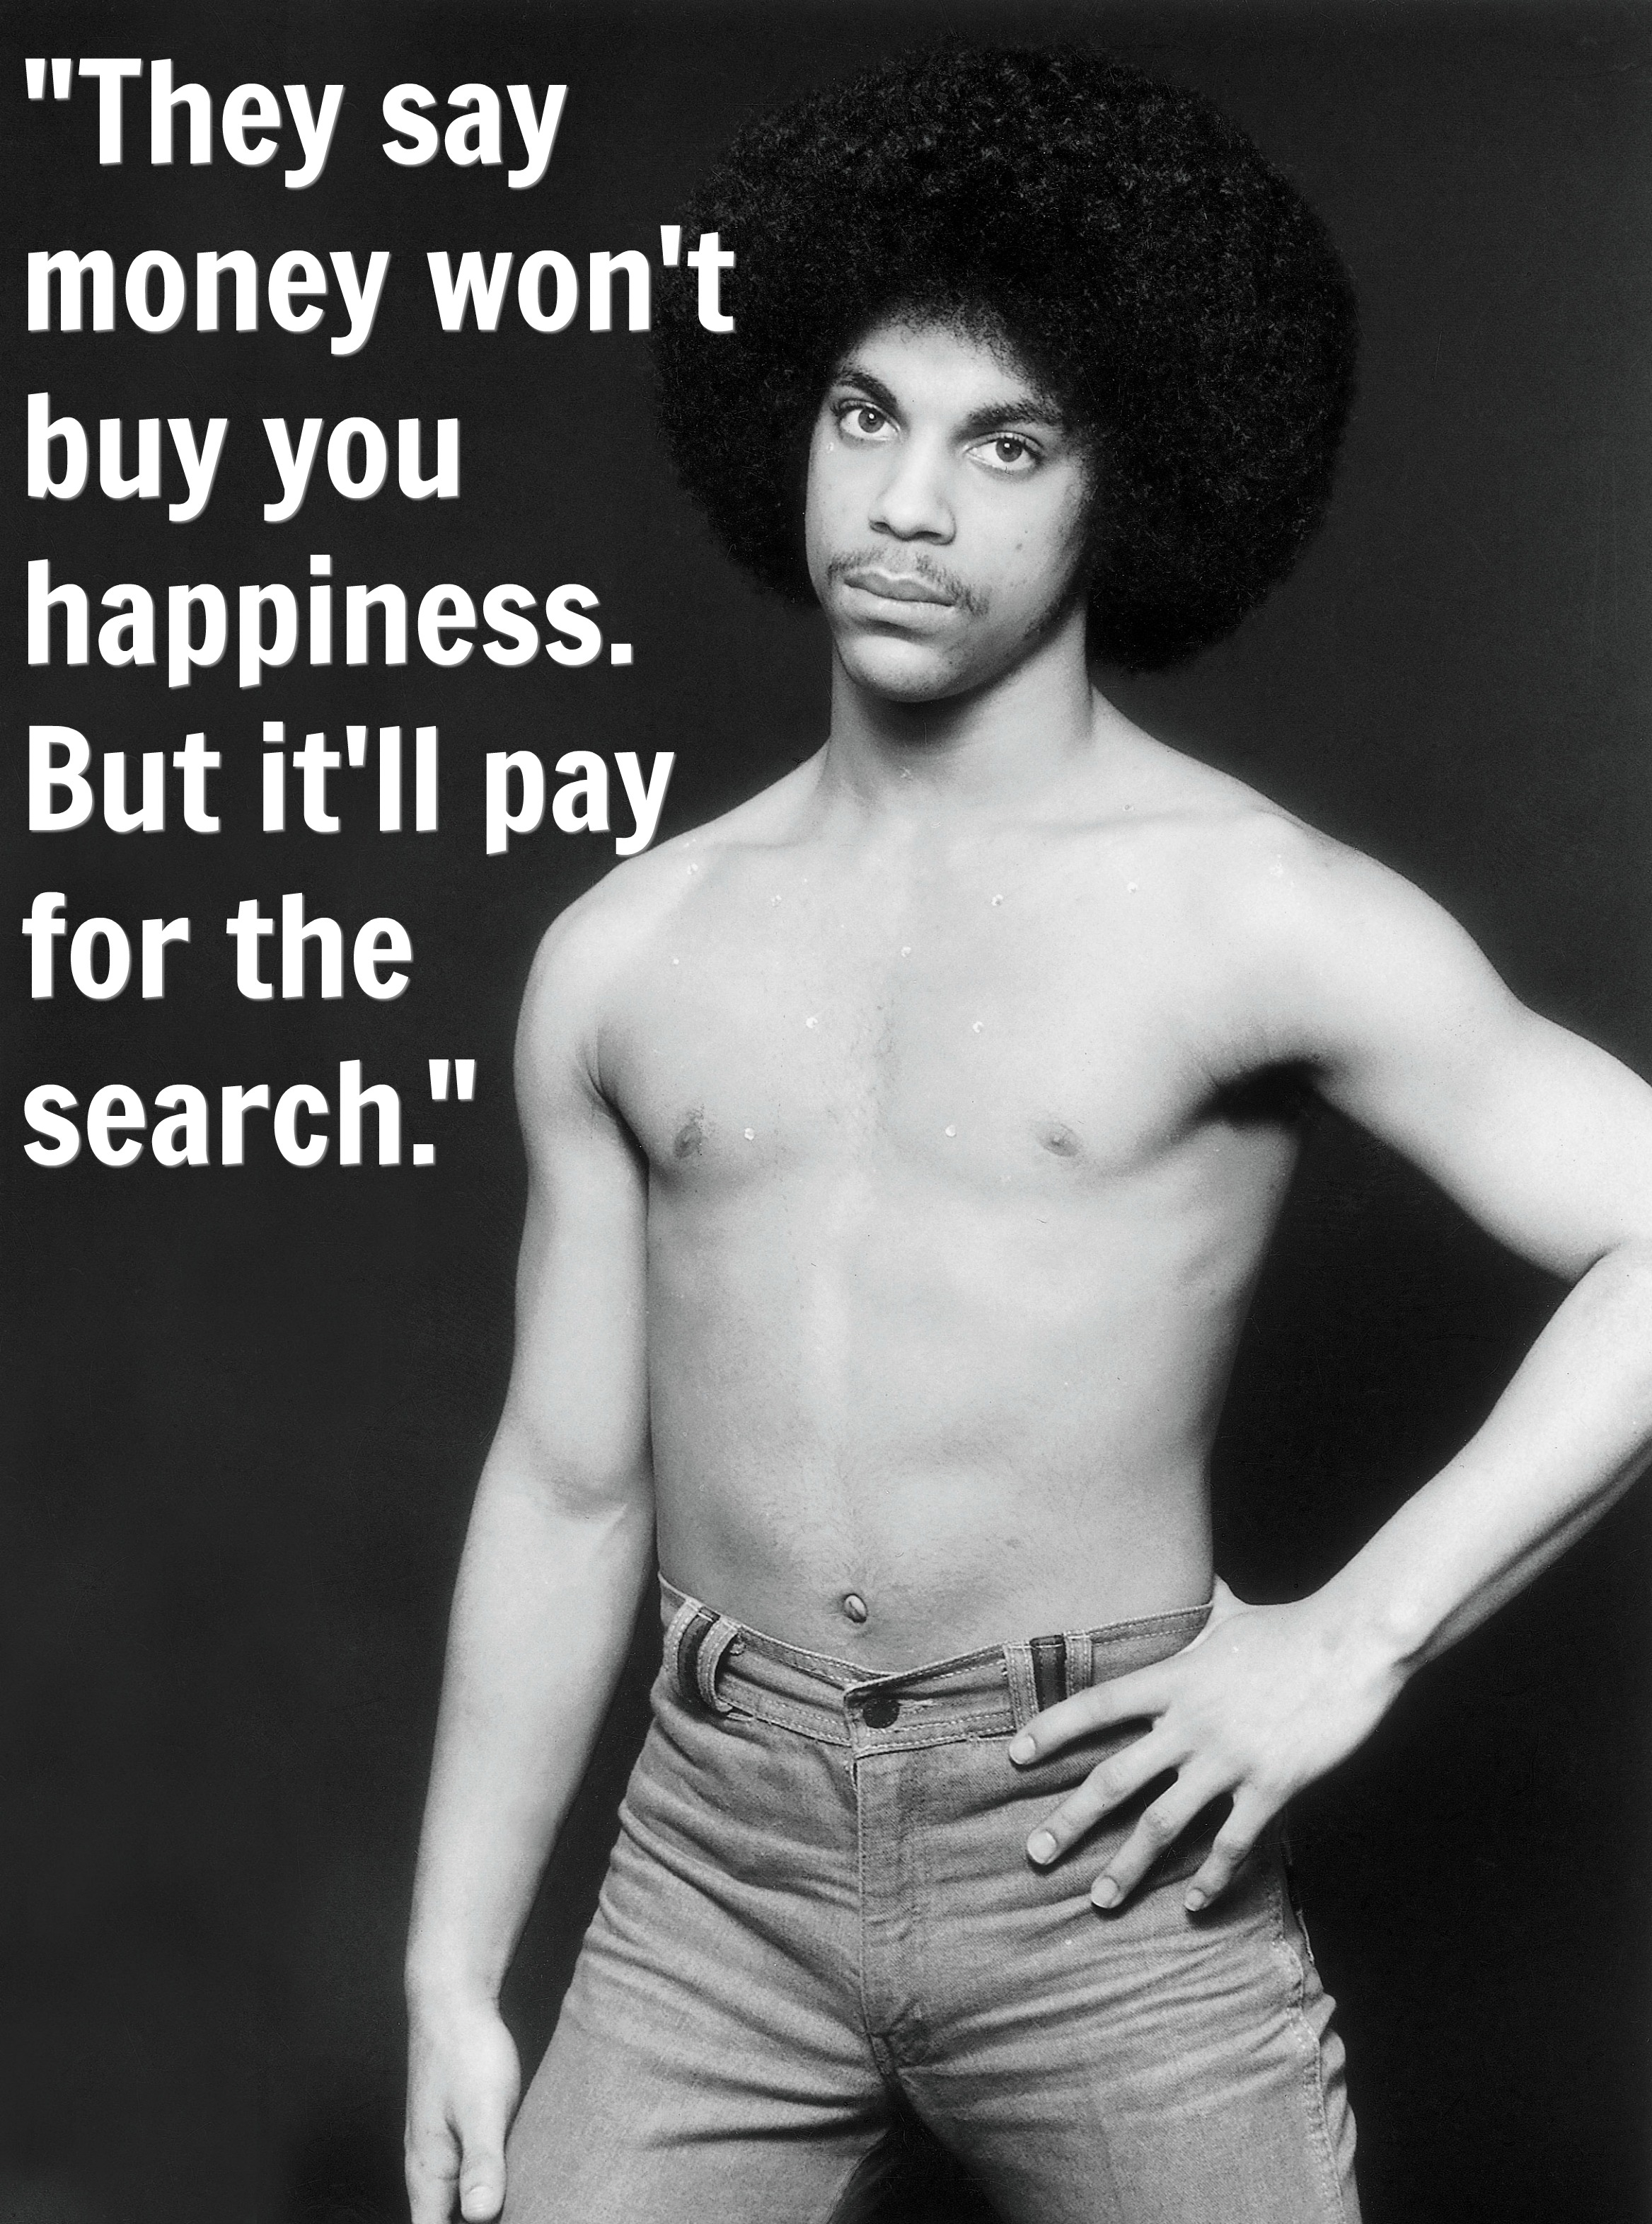 Prince quotes that give you life. They say money won't buy you happiness. But it'll pay for the search.